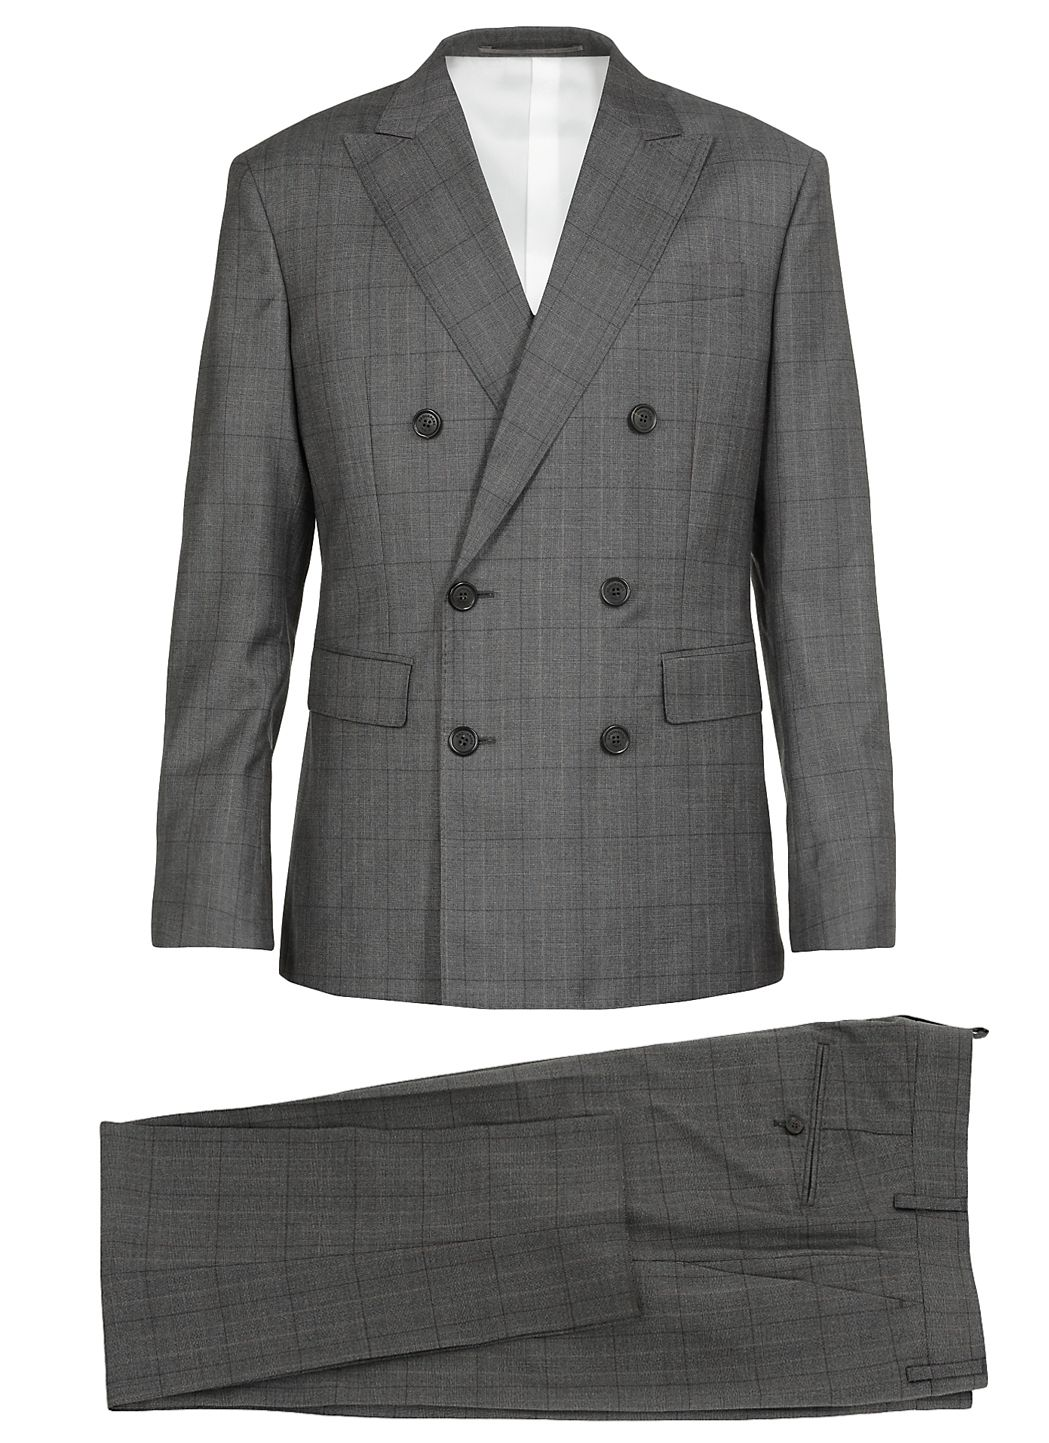 Virgin wool suit